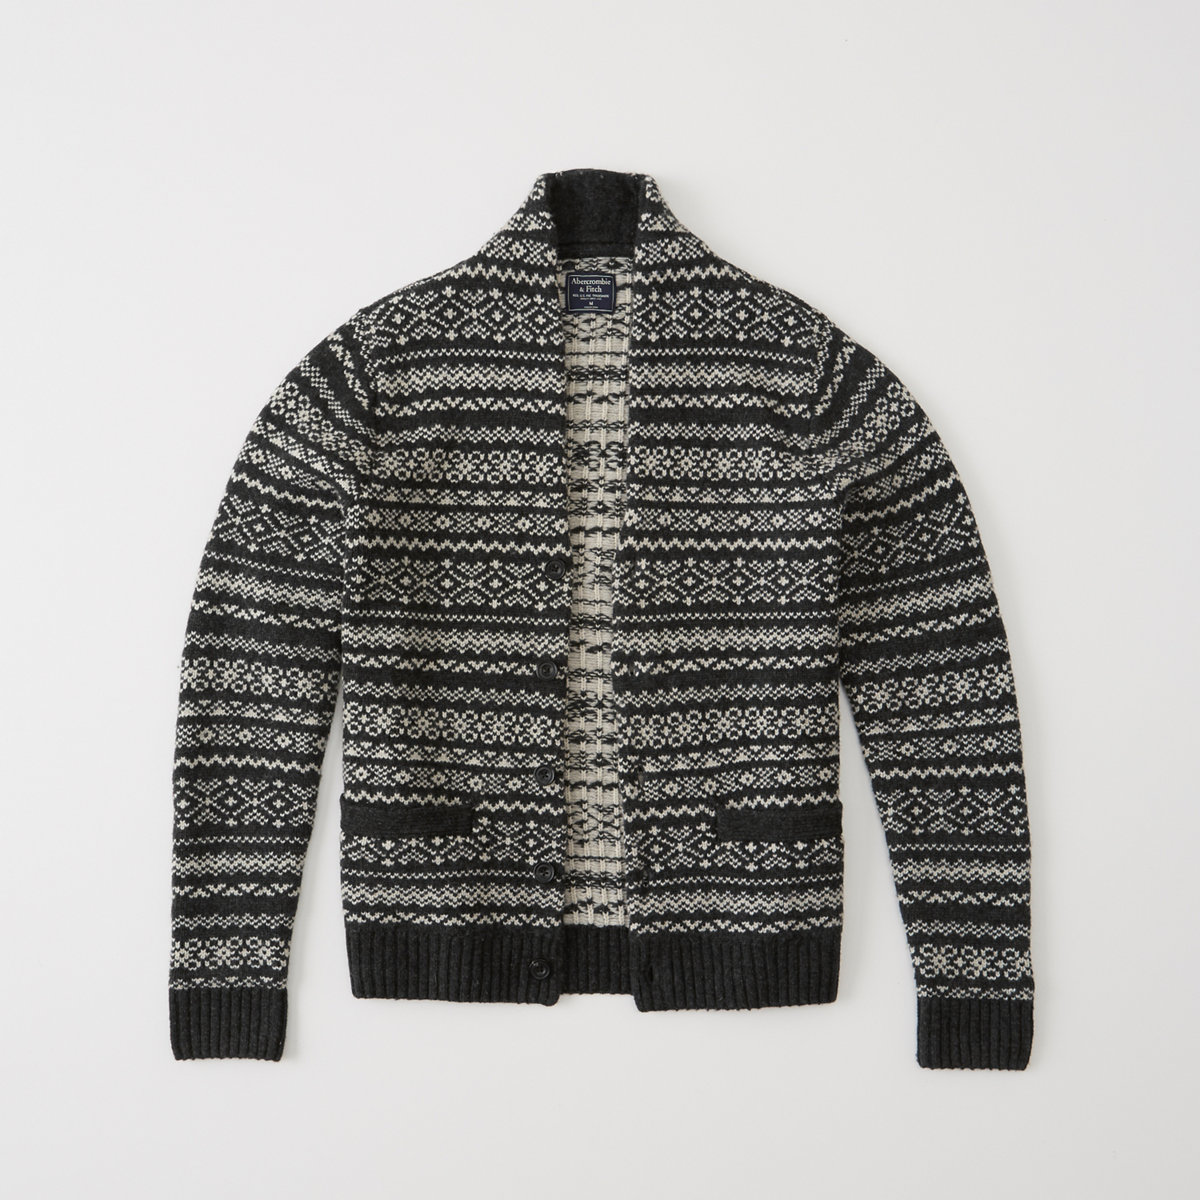 Patterned Shawl Cardigan